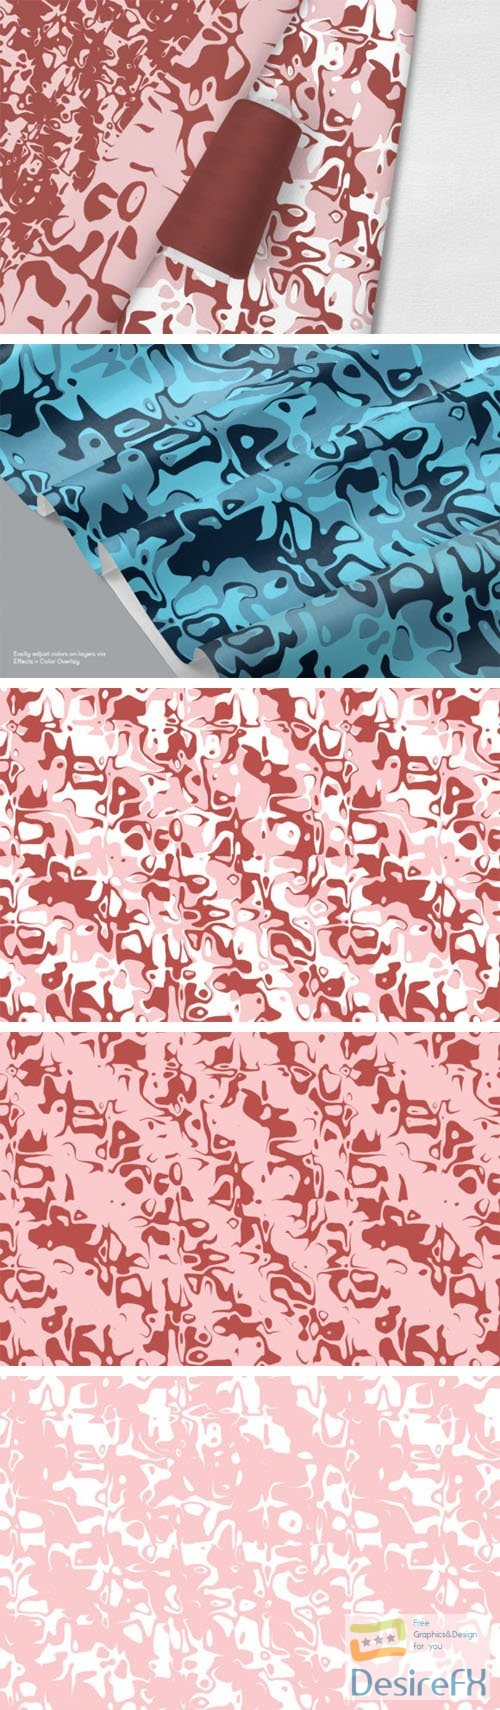 Abstract Organic Patterns PSD Template